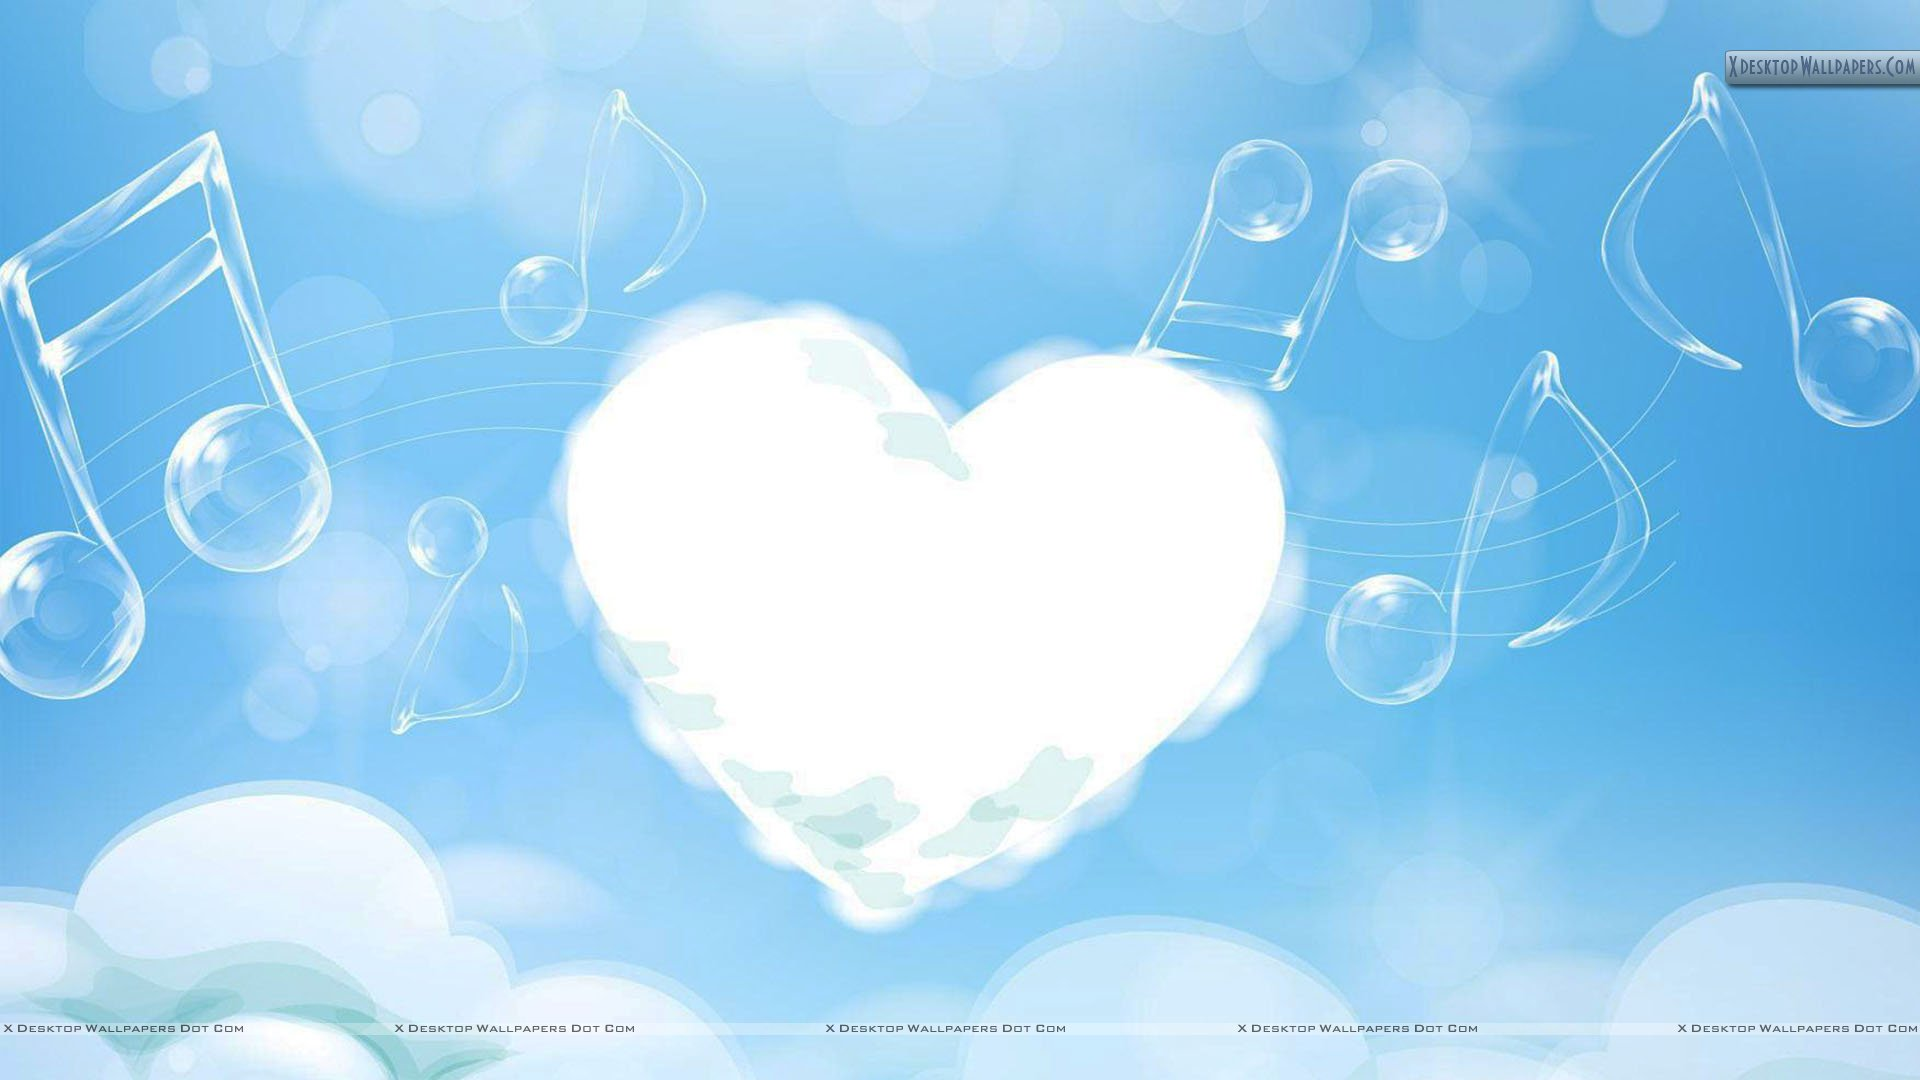 Fantastic Wallpaper Music Heart - White-Cloud-Heart-And-Music-Strings-In-Sky  Graphic_846048.jpg?type\u003ddownload